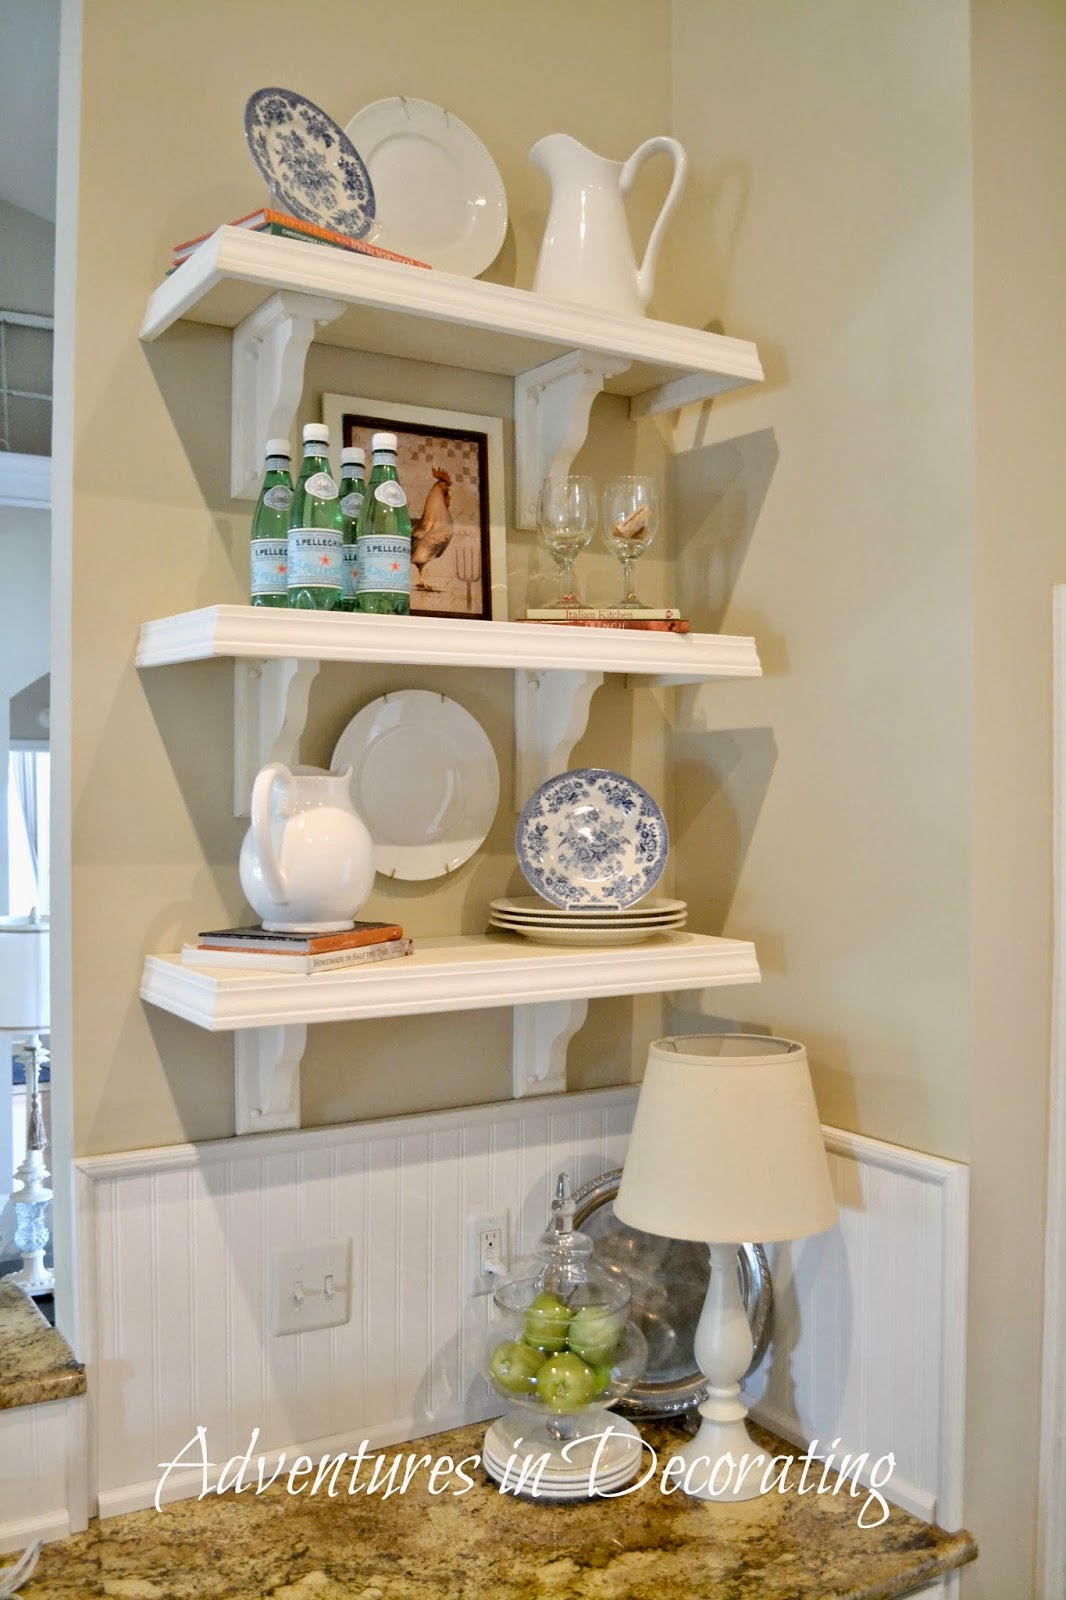 Adventures In Decorating: Spring Kitchen Shelves